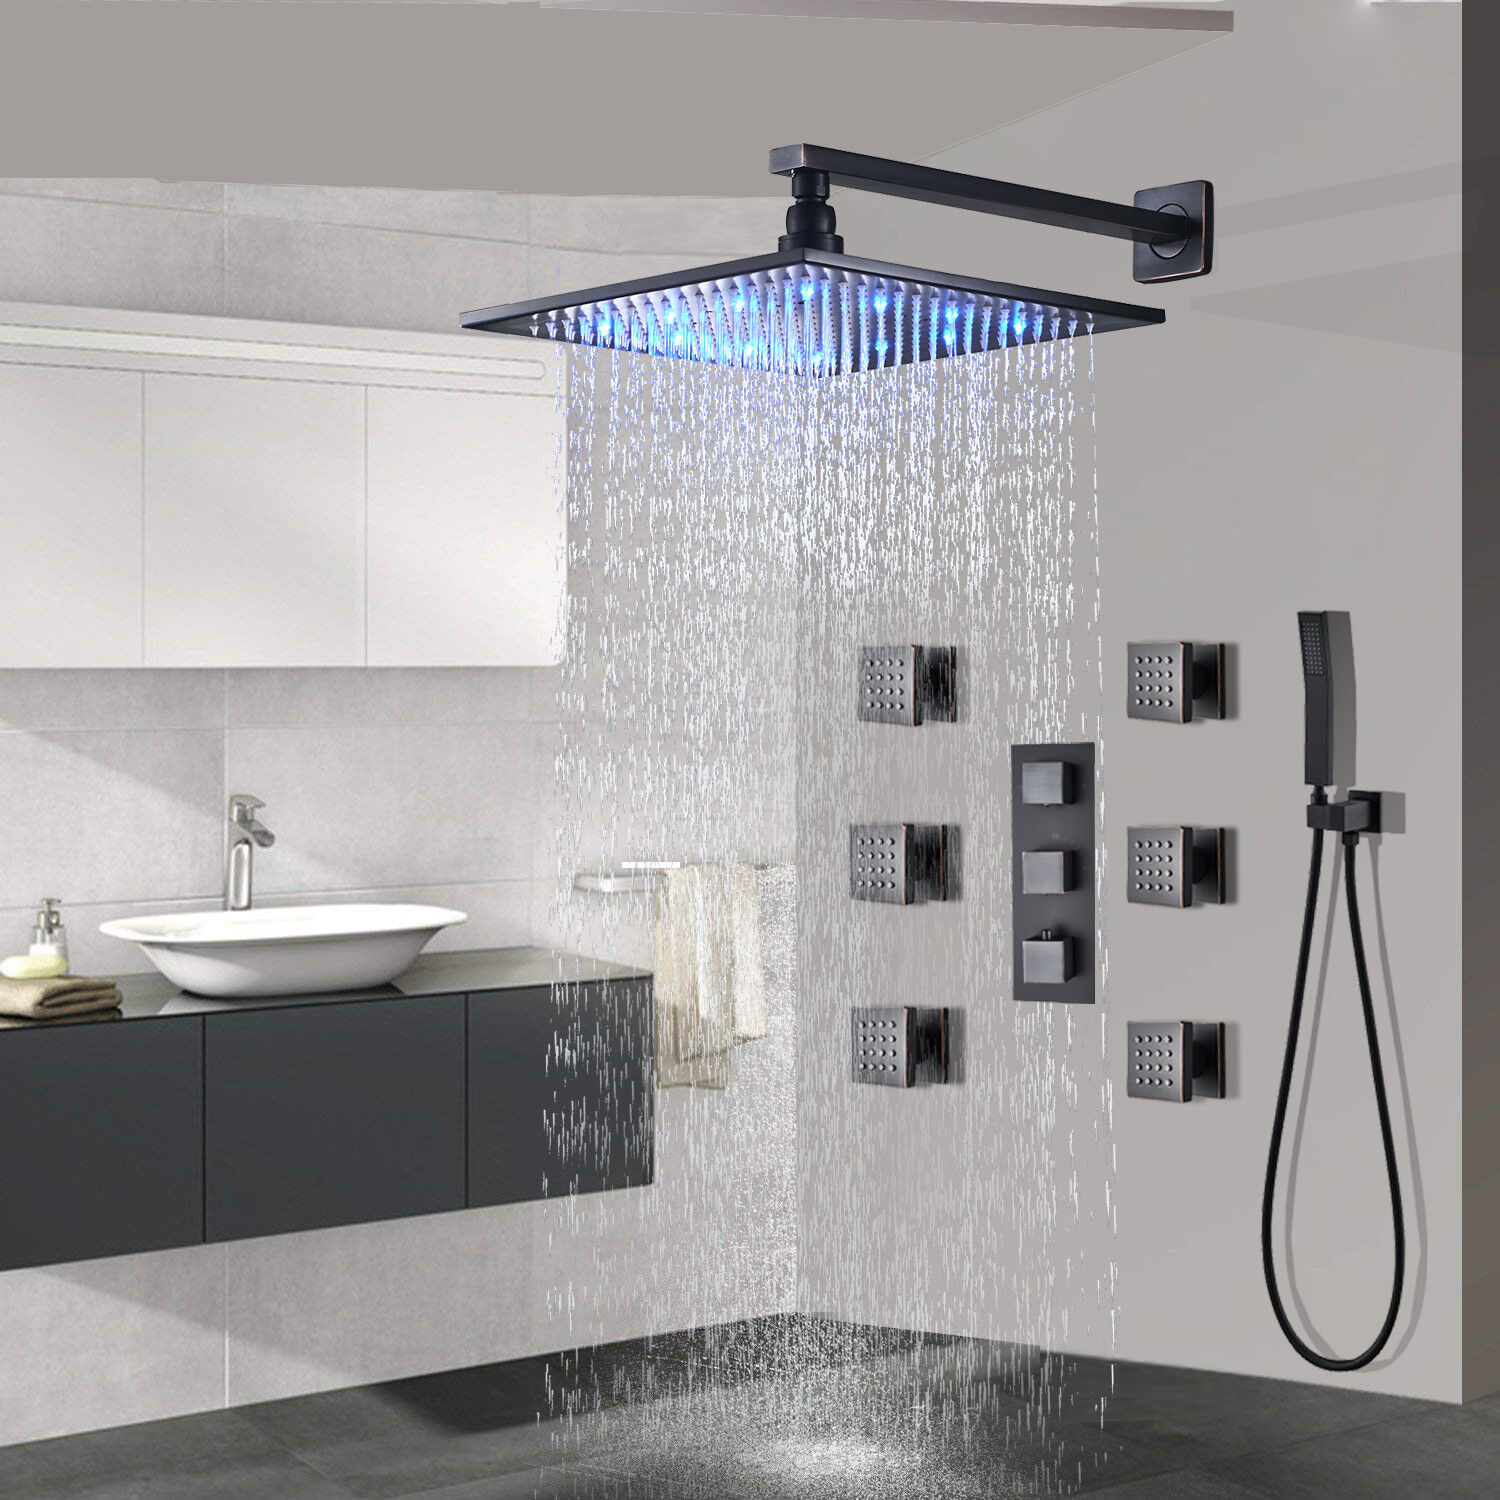 Details About Thermostaic Shower Faucet System 8 Led Rain Massager Body Jet Oil Rubbed Bronze